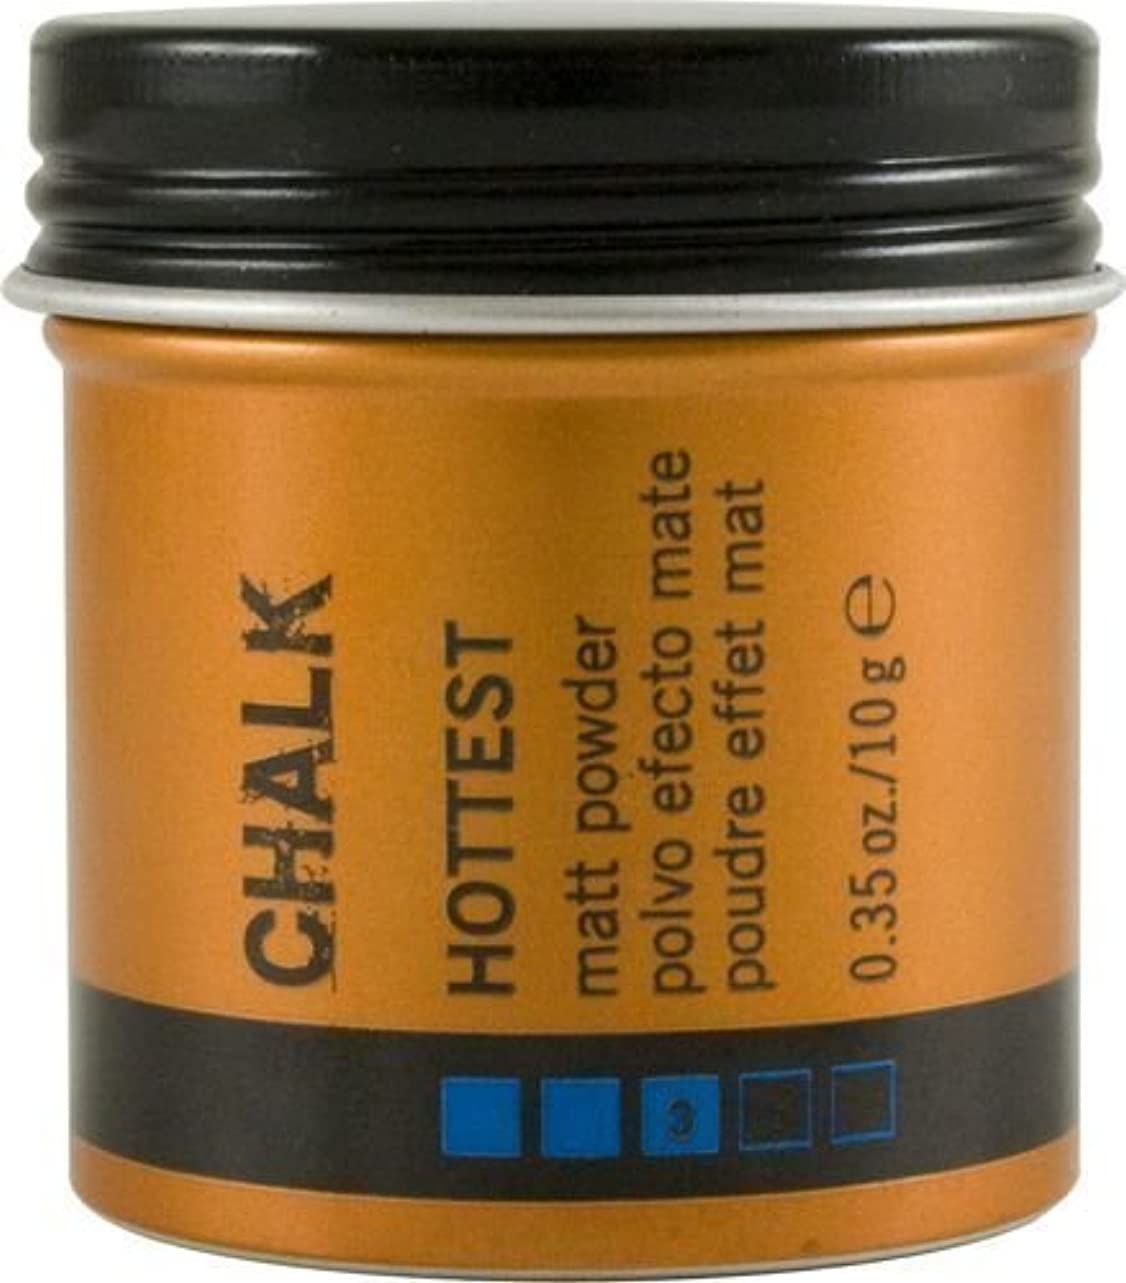 人工的な怪物世辞Lakme K.Style Chalk Hottest Matt powder 0.35 oz/ 10 g by Lakme